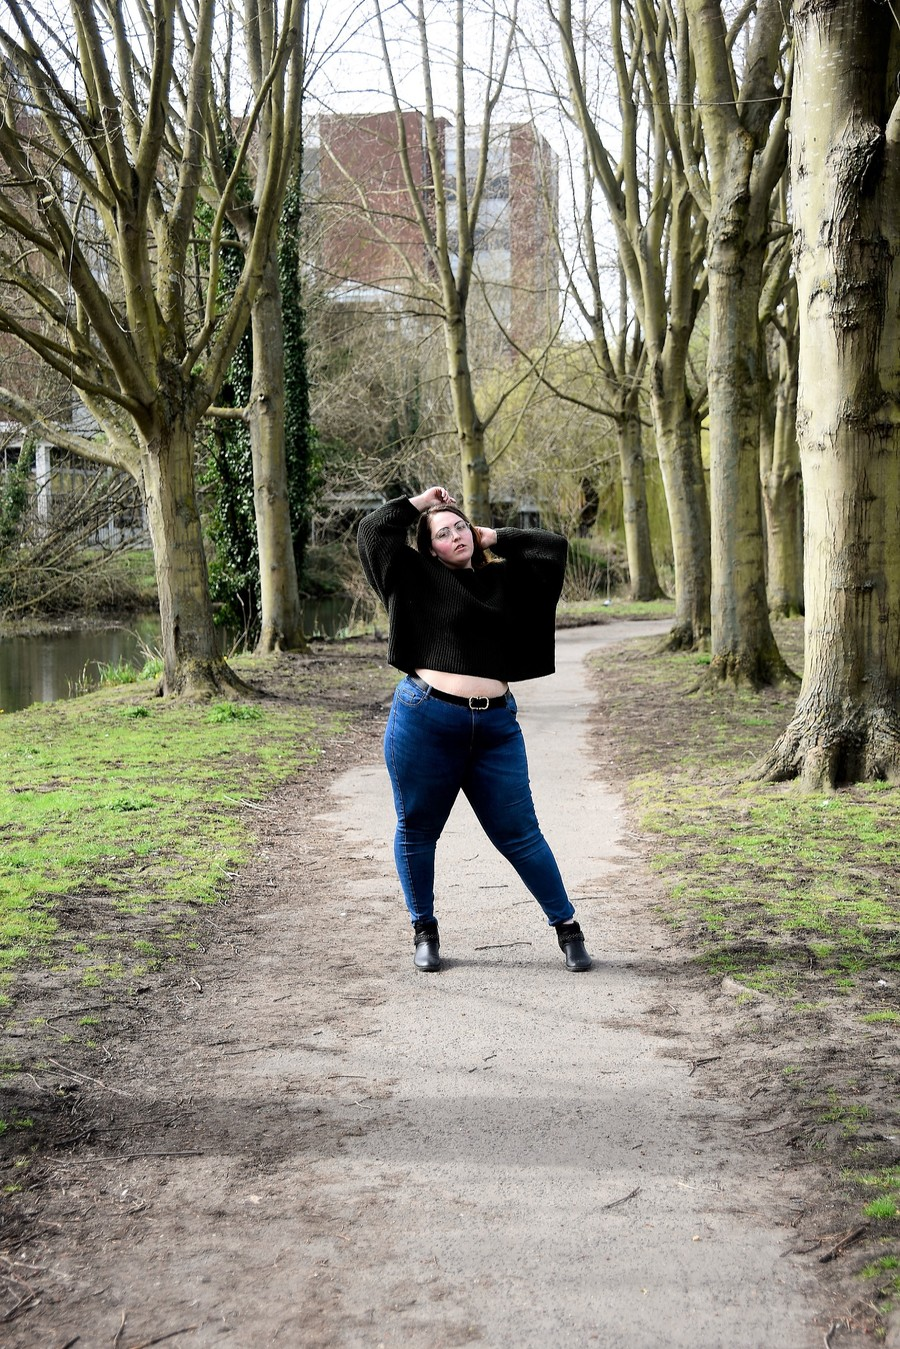 Photography by Stephen Roissy, Model Sqrkiddo / Uploaded 2nd April 2021 @ 01:42 PM